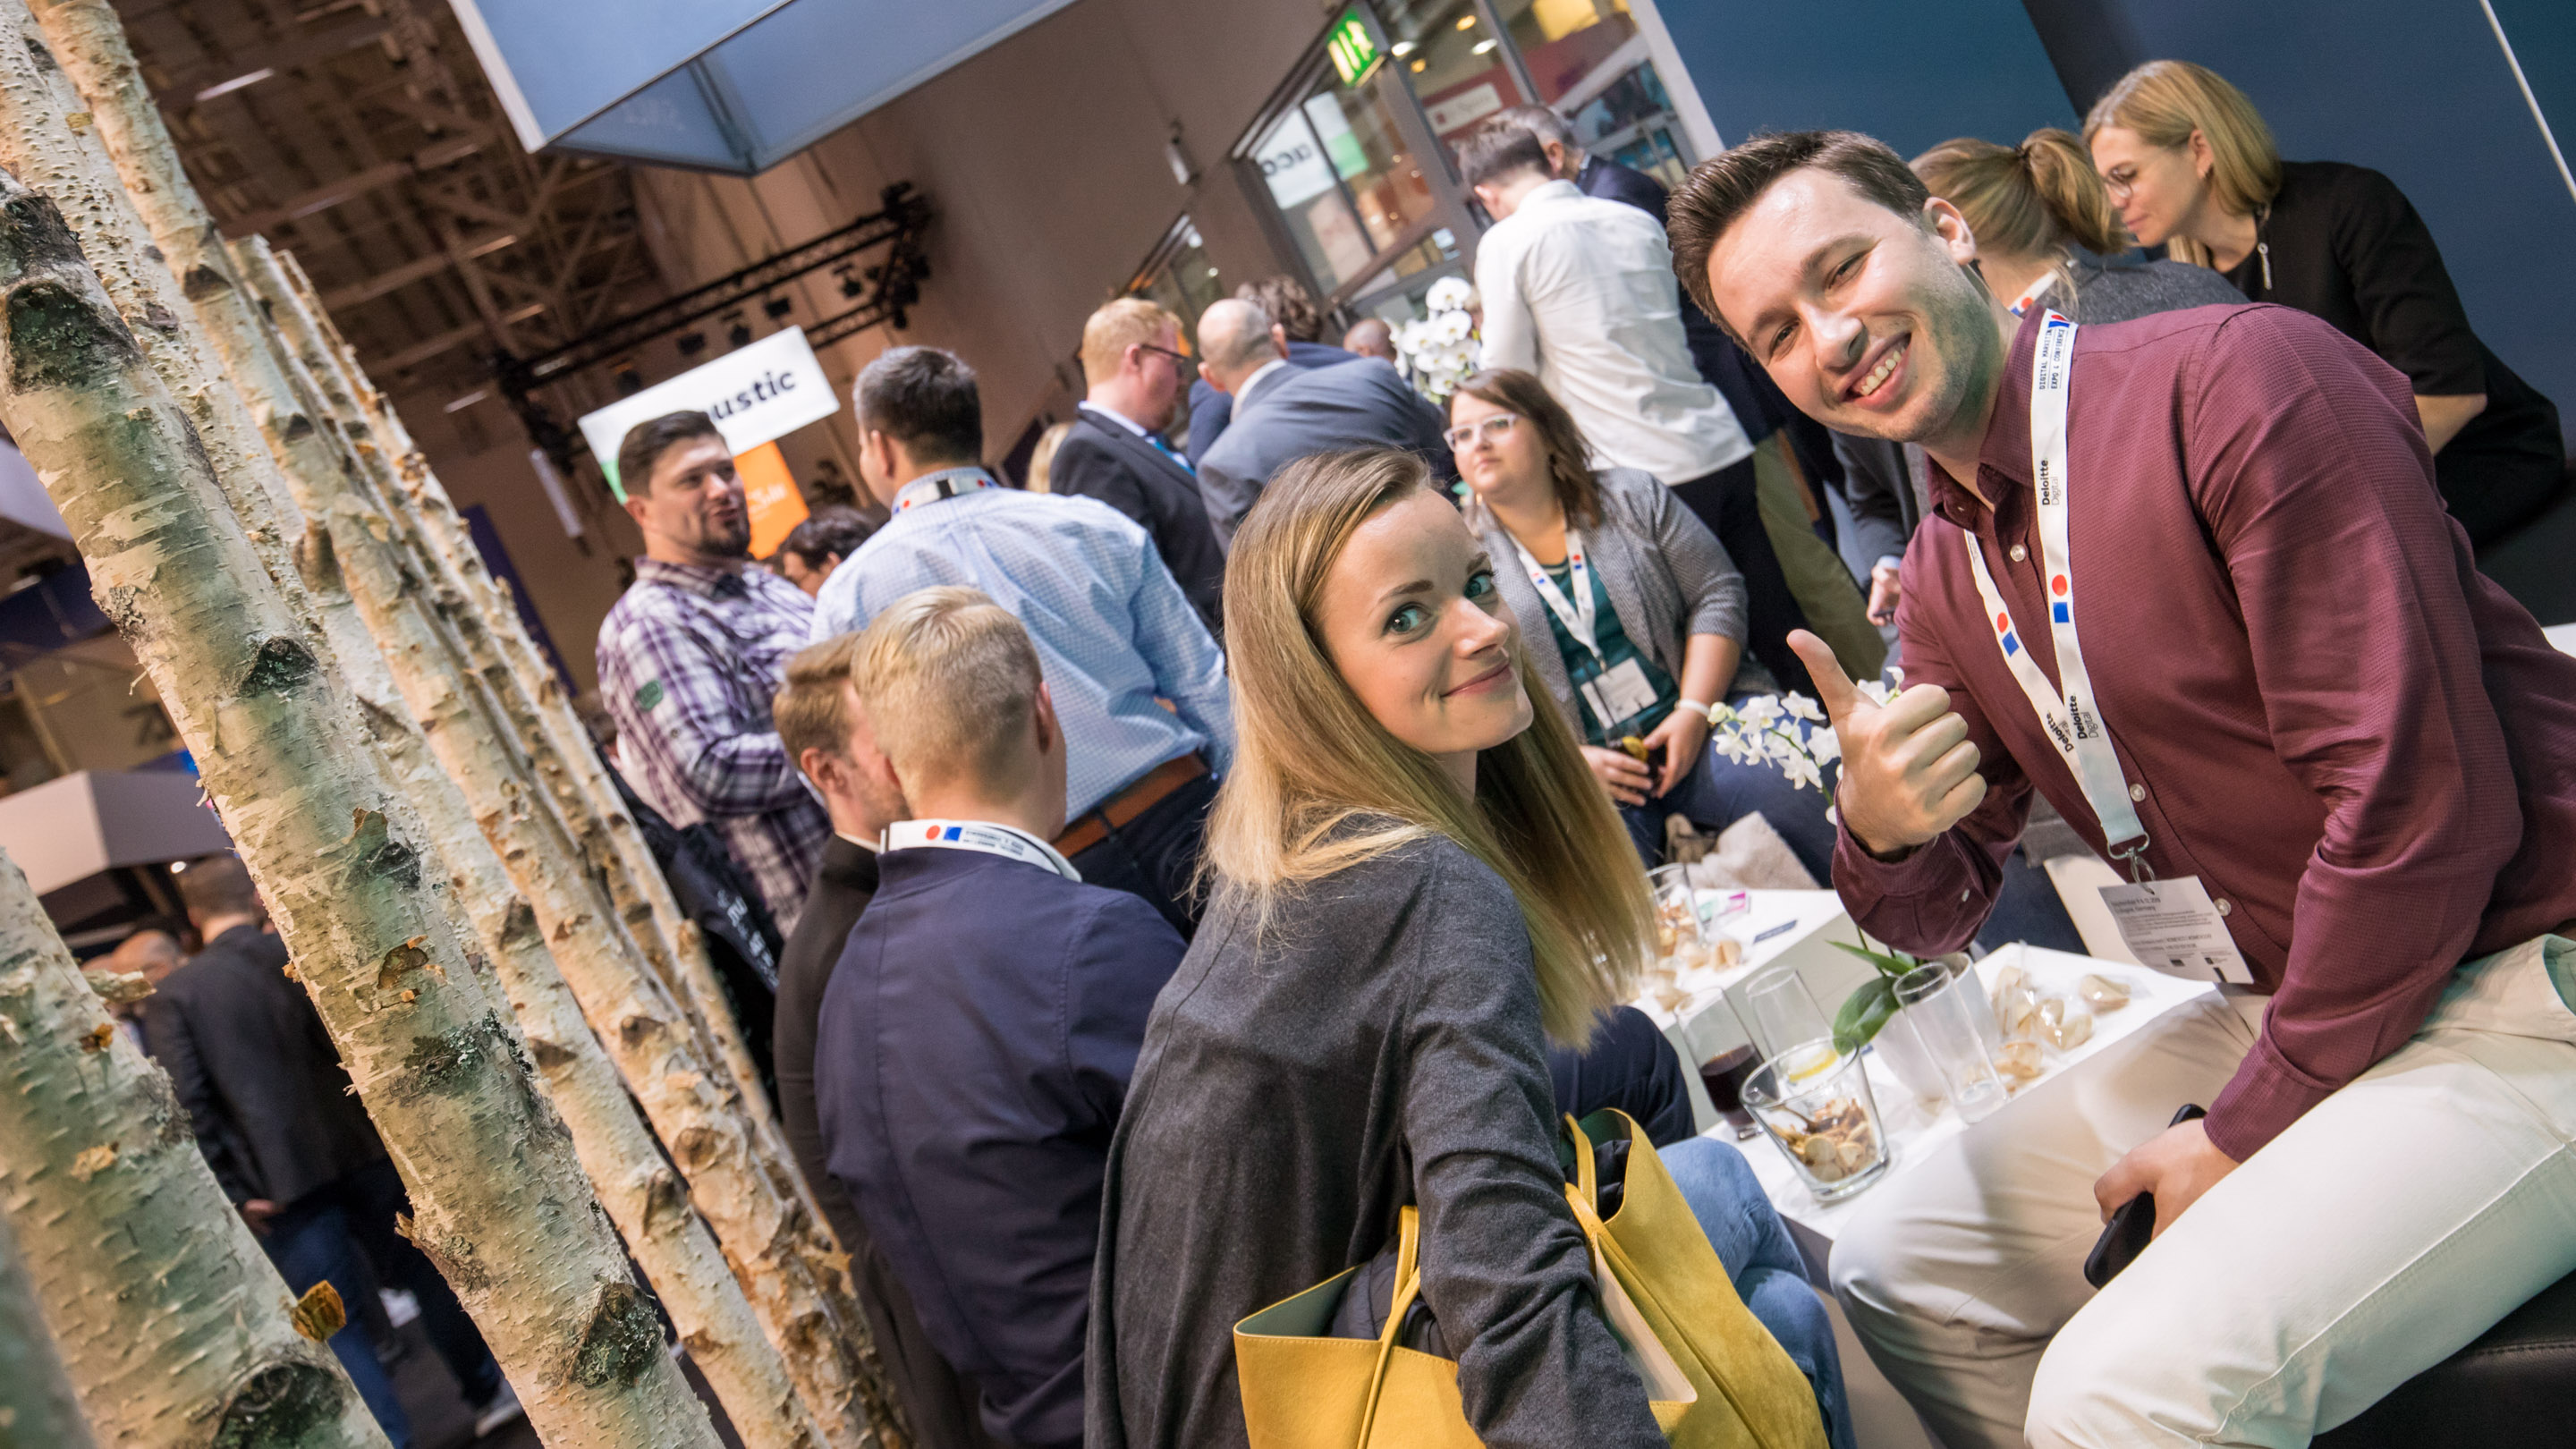 Standparty, Halle 8, DMEXCO 2019